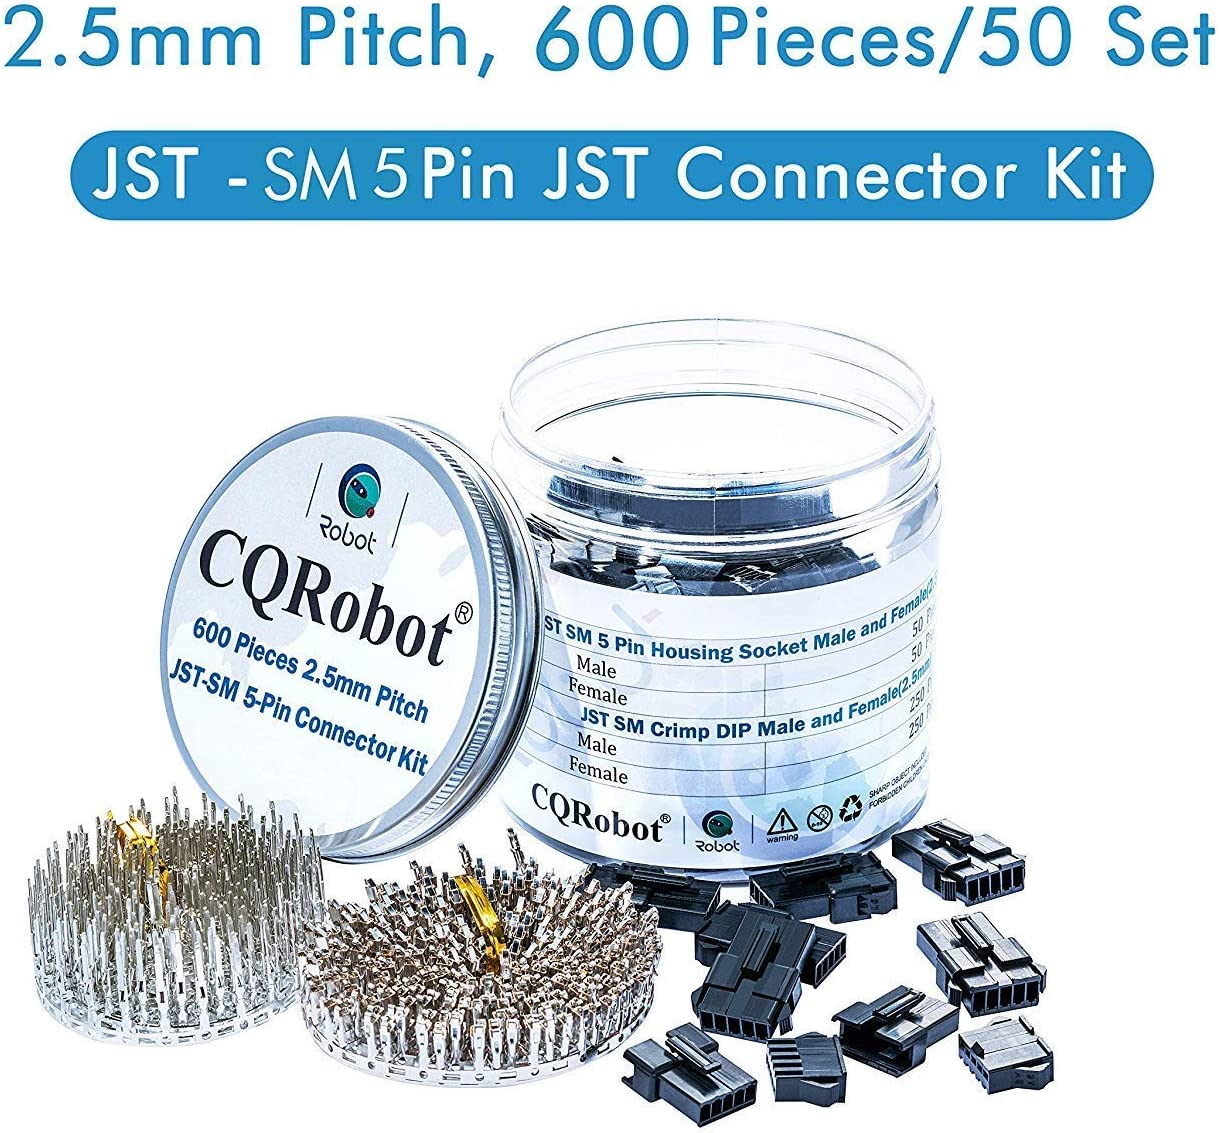 JST Adapter Cable Connector Socket Male and Female. JST Connector Kit//Crimp DIP Kit 2.5mm Pin Pitch 600 pcs JST-SM-5-Pin Pin Housing Male and Pin Housing Female